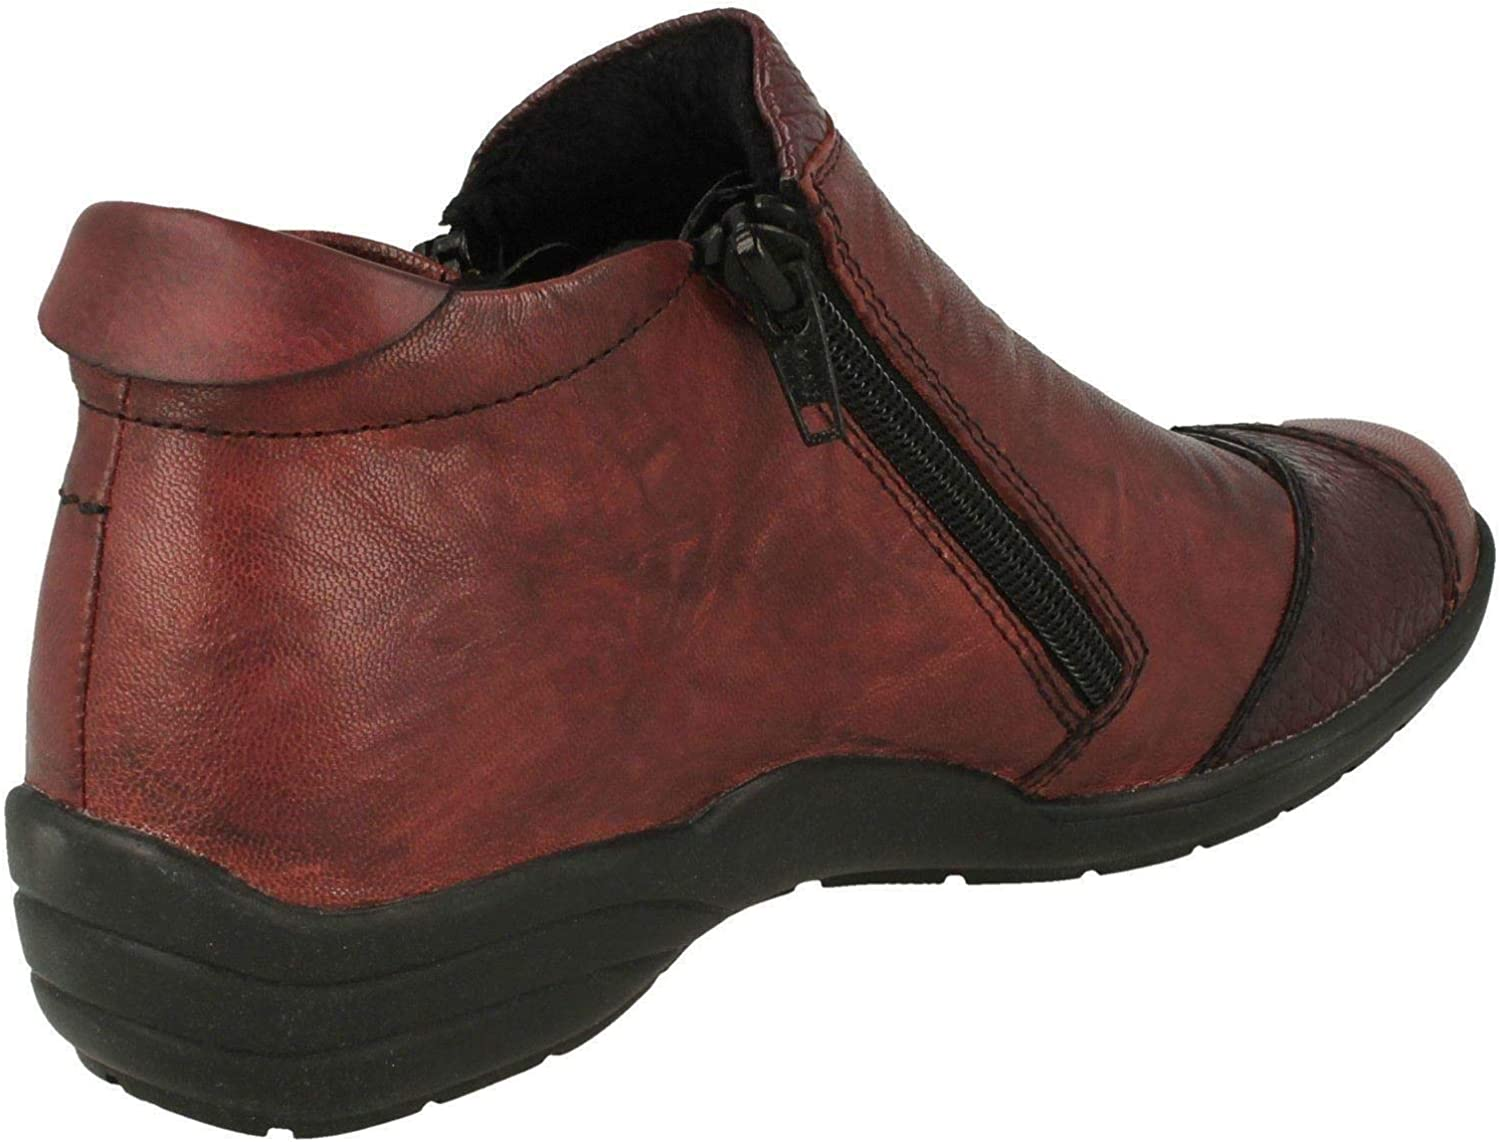 Remonte Ladies Casual Ankle Boots R7671 Red